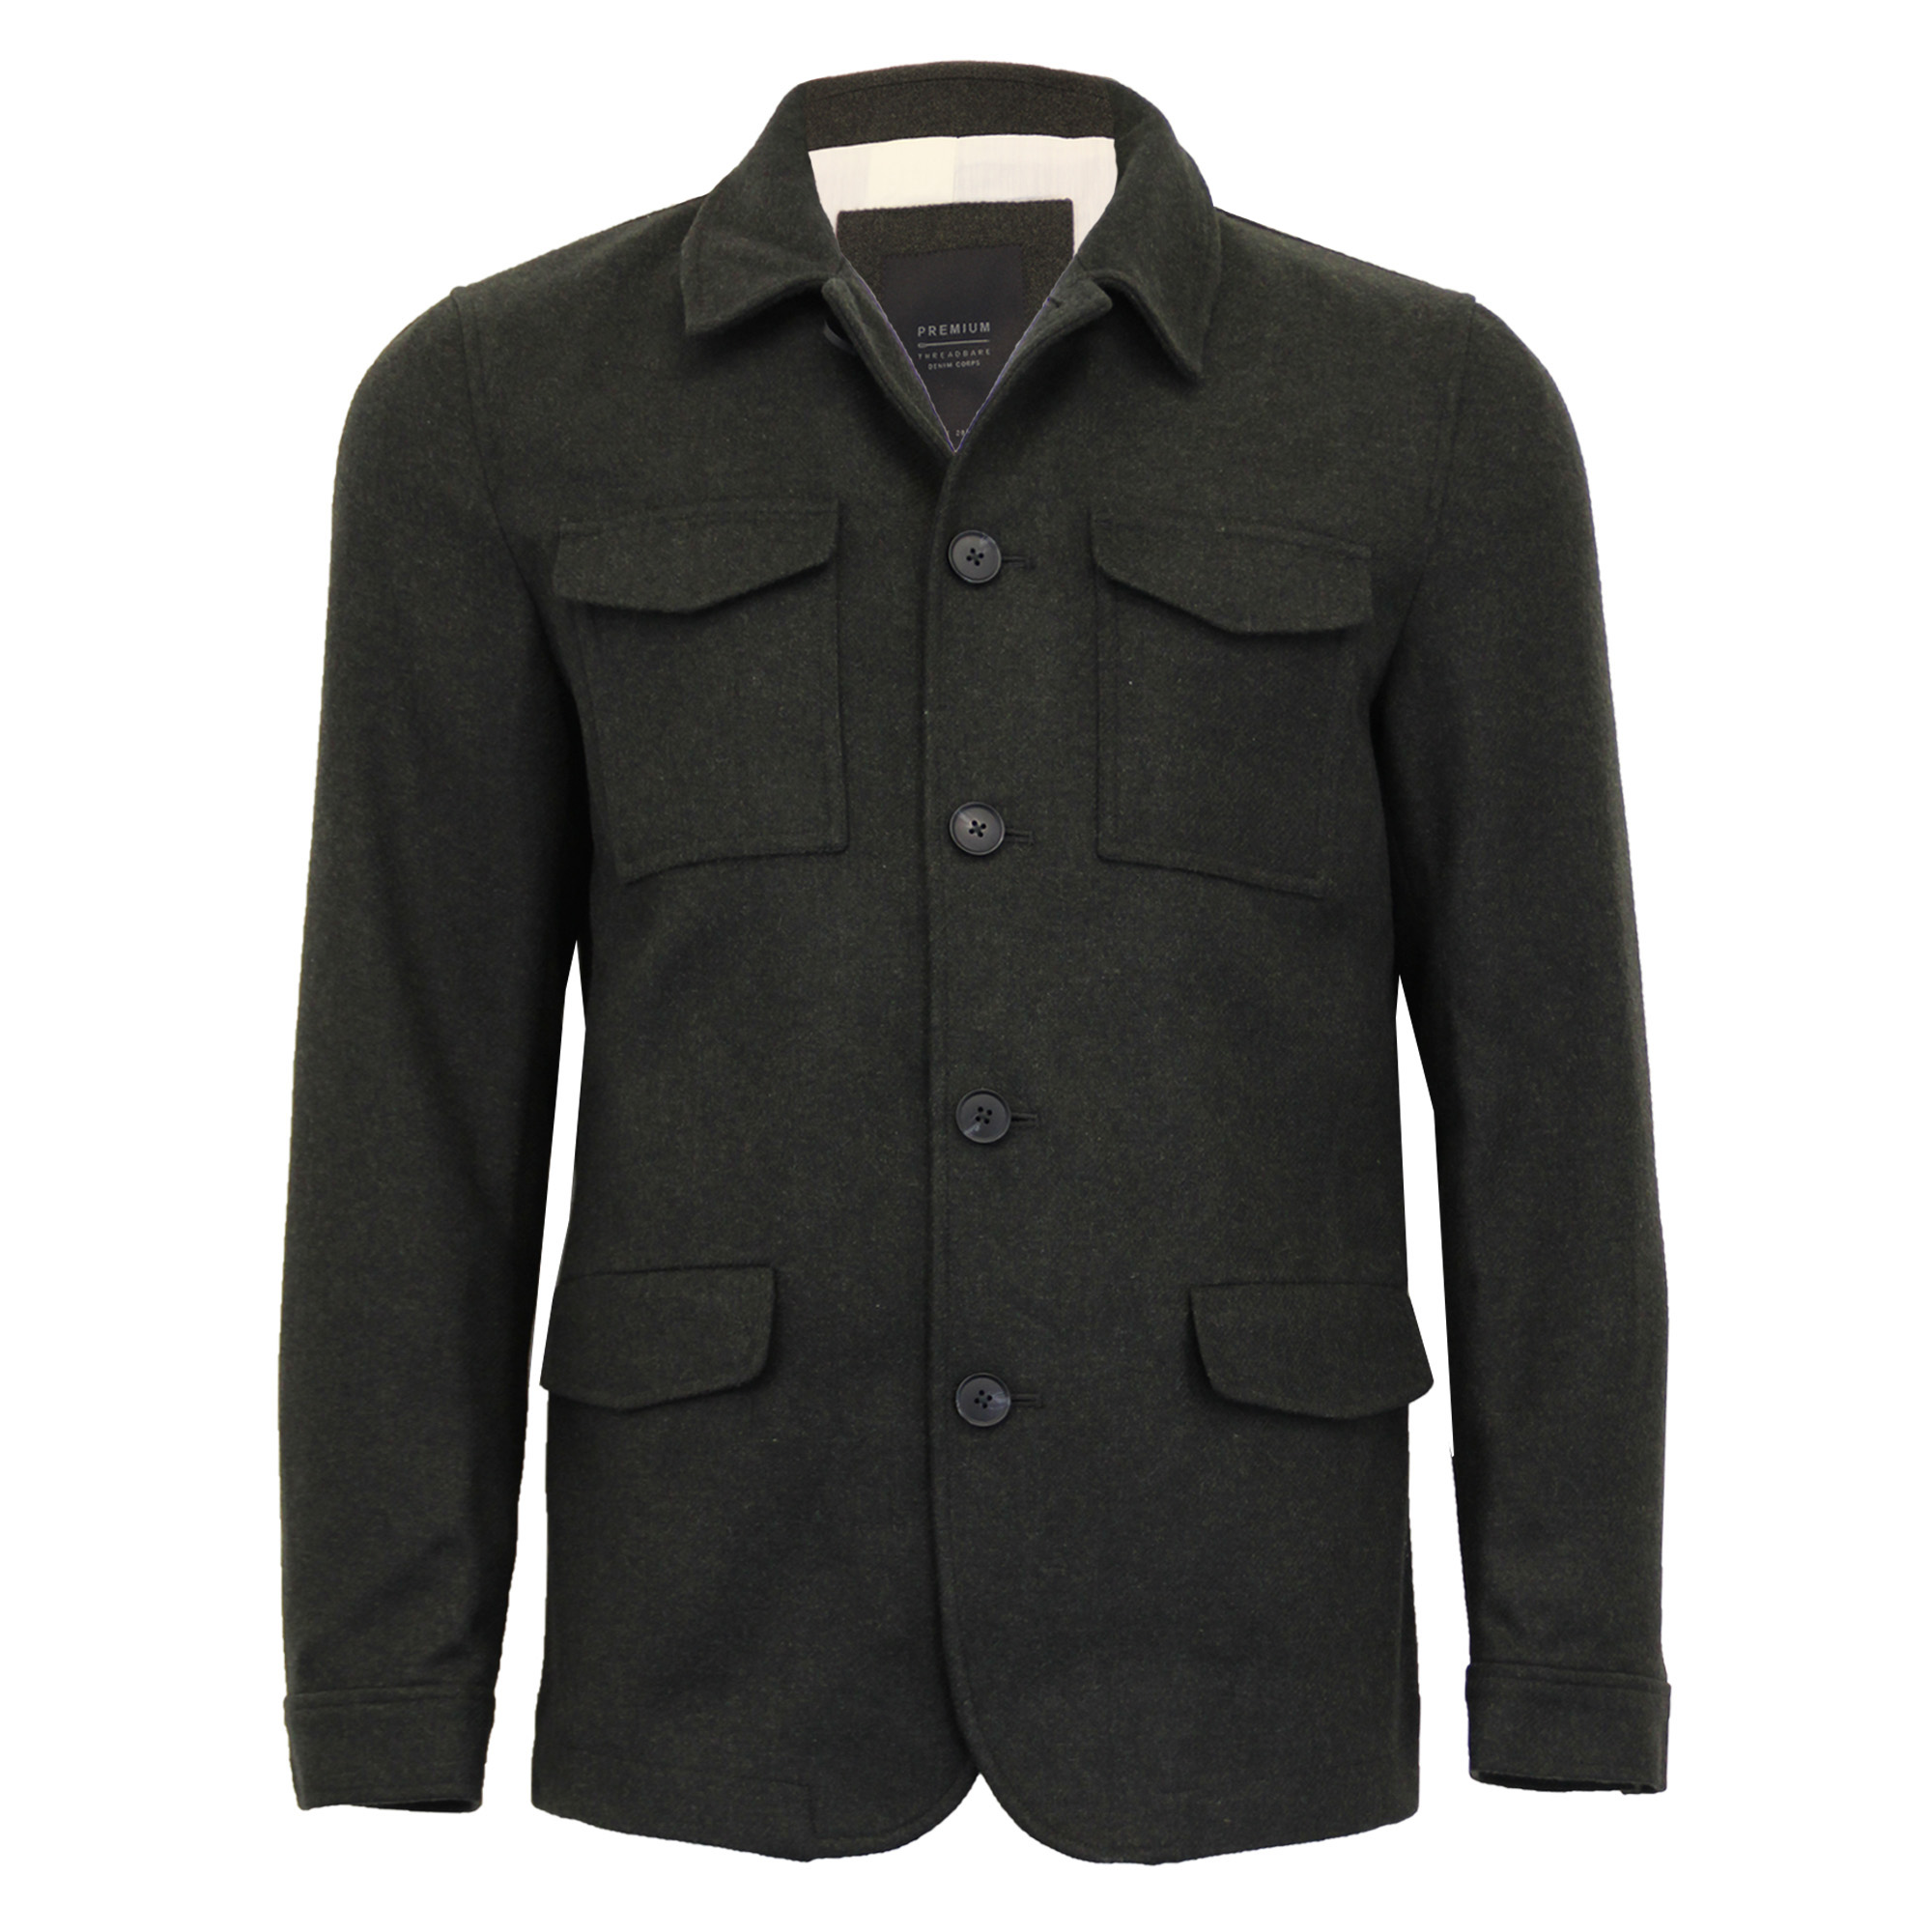 Mens-Wool-Mix-Jacket-Threadbare-Coat-Double-Breasted-Duffle-Lined-Winter-New thumbnail 5